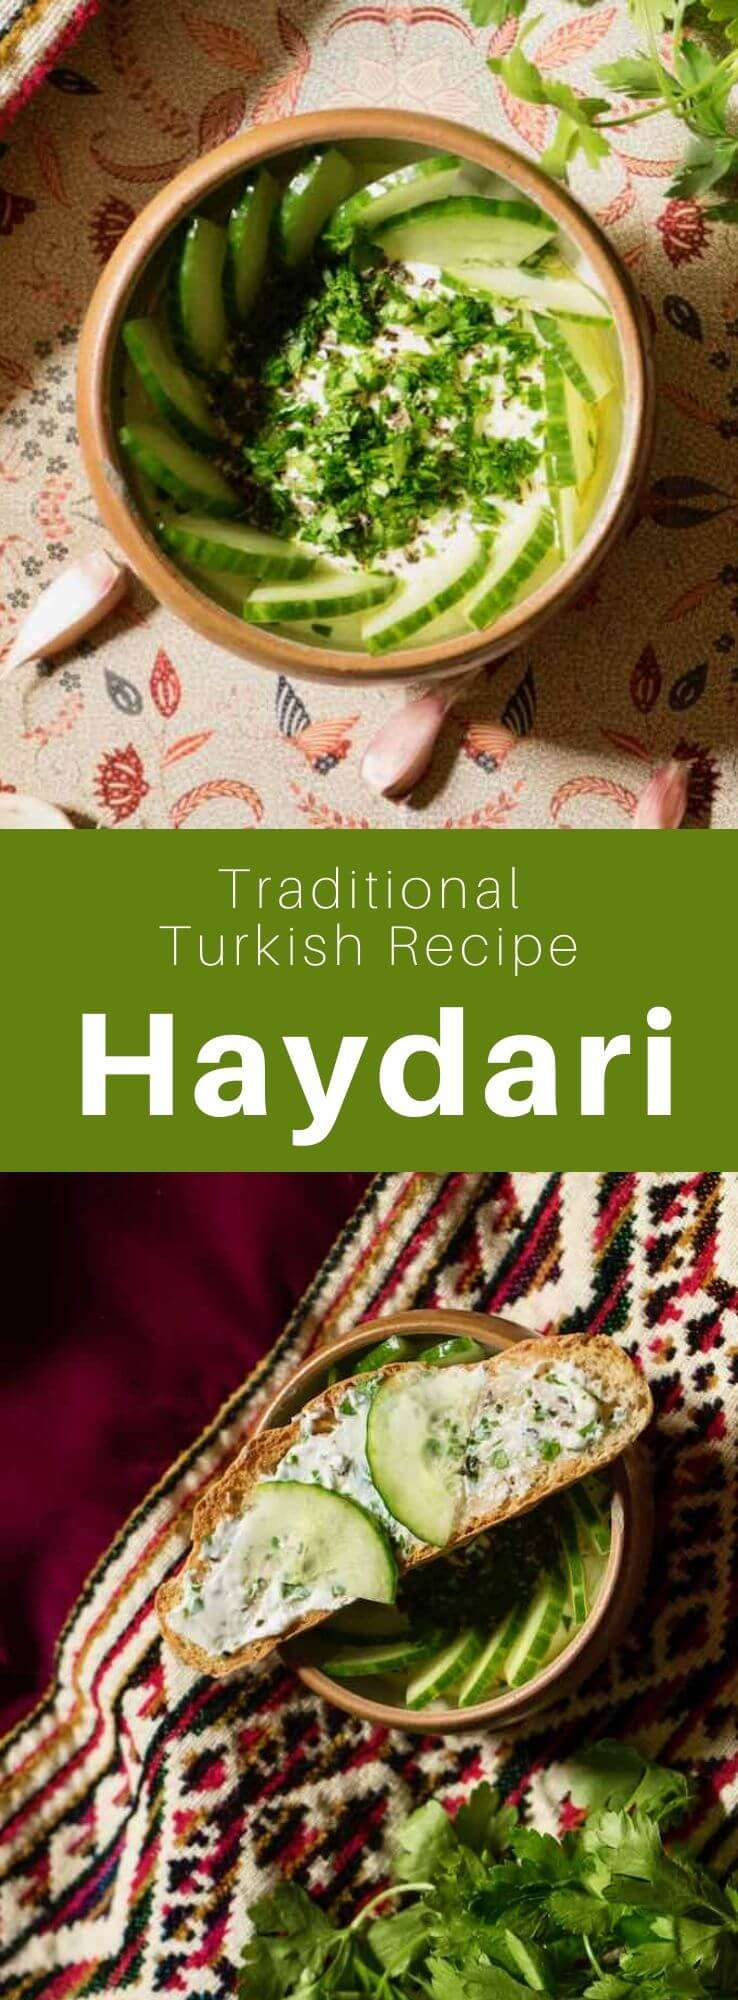 Haydari, an essential mezze in Turkish cuisine, is prepared with labneh, garlic and herbs. It is similar to tzatziki (cacık in Turkish) but more salty, more acidic and with a thicker consistency. #Turkey #Turkish #TurkishRecipe #TurkishFood #TurkishCuisine #WorldCuisine #196flavors